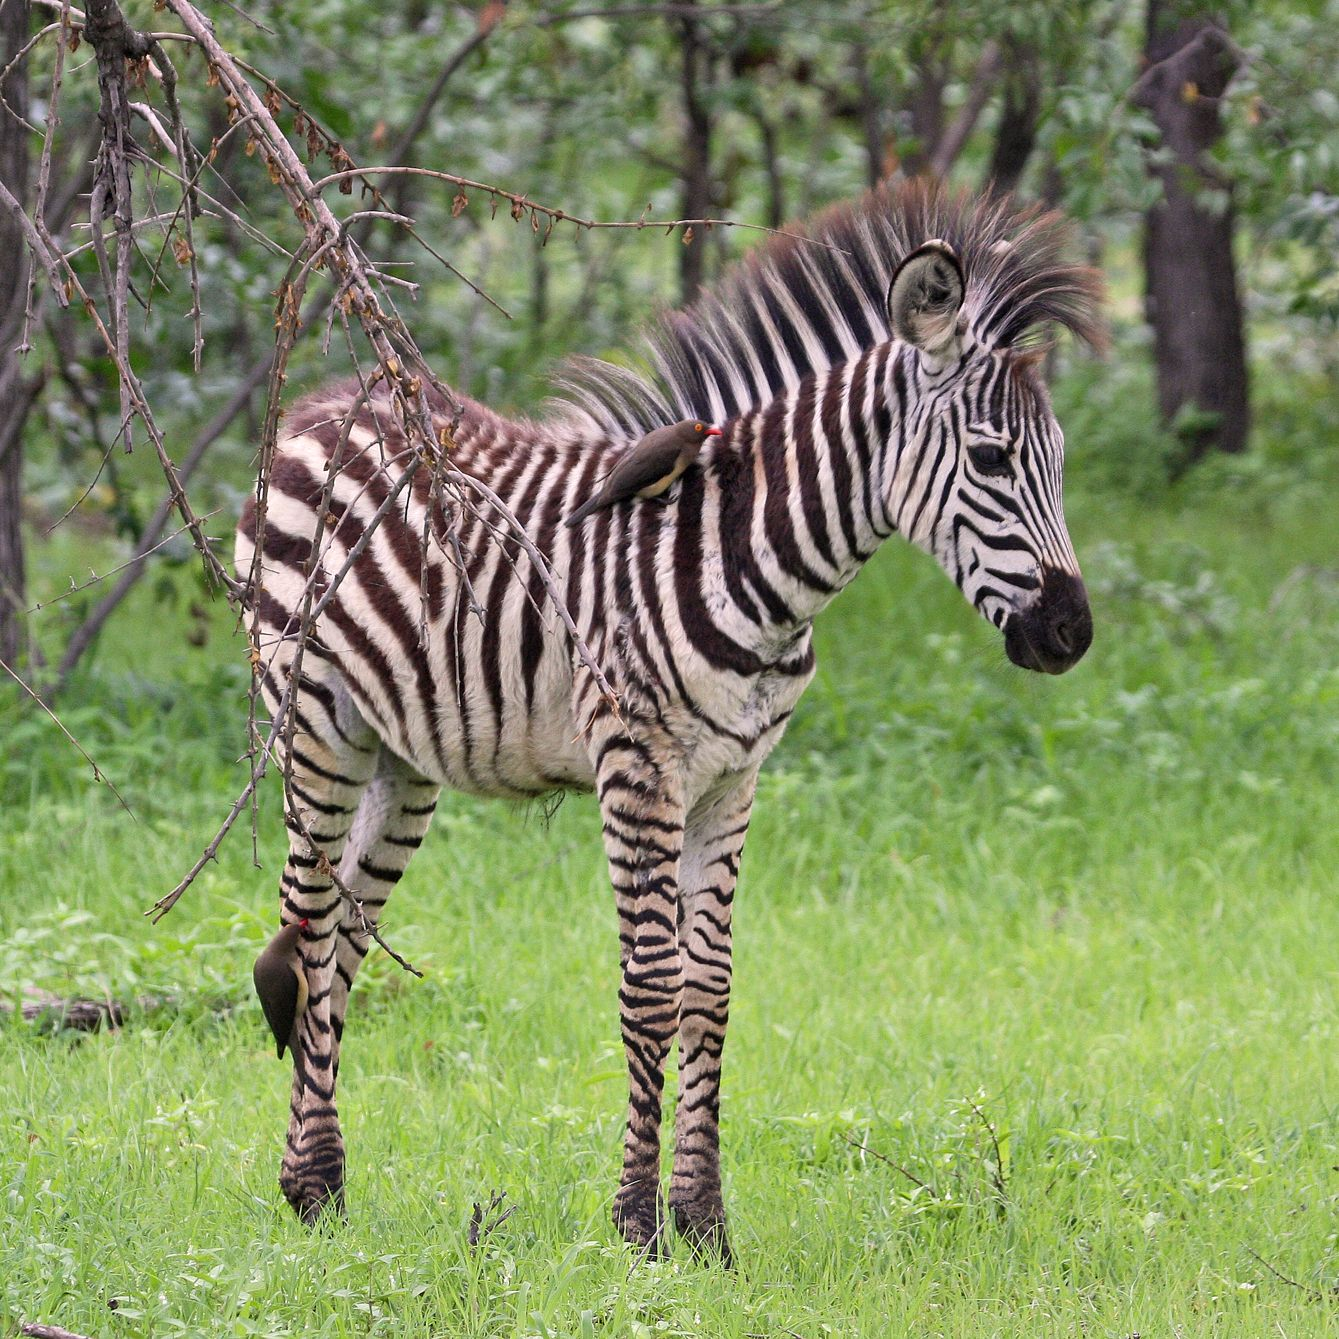 Cute Babies Hd Wallpapers For Mobile Free Download Zebra Wallpapers High Quality Download Free